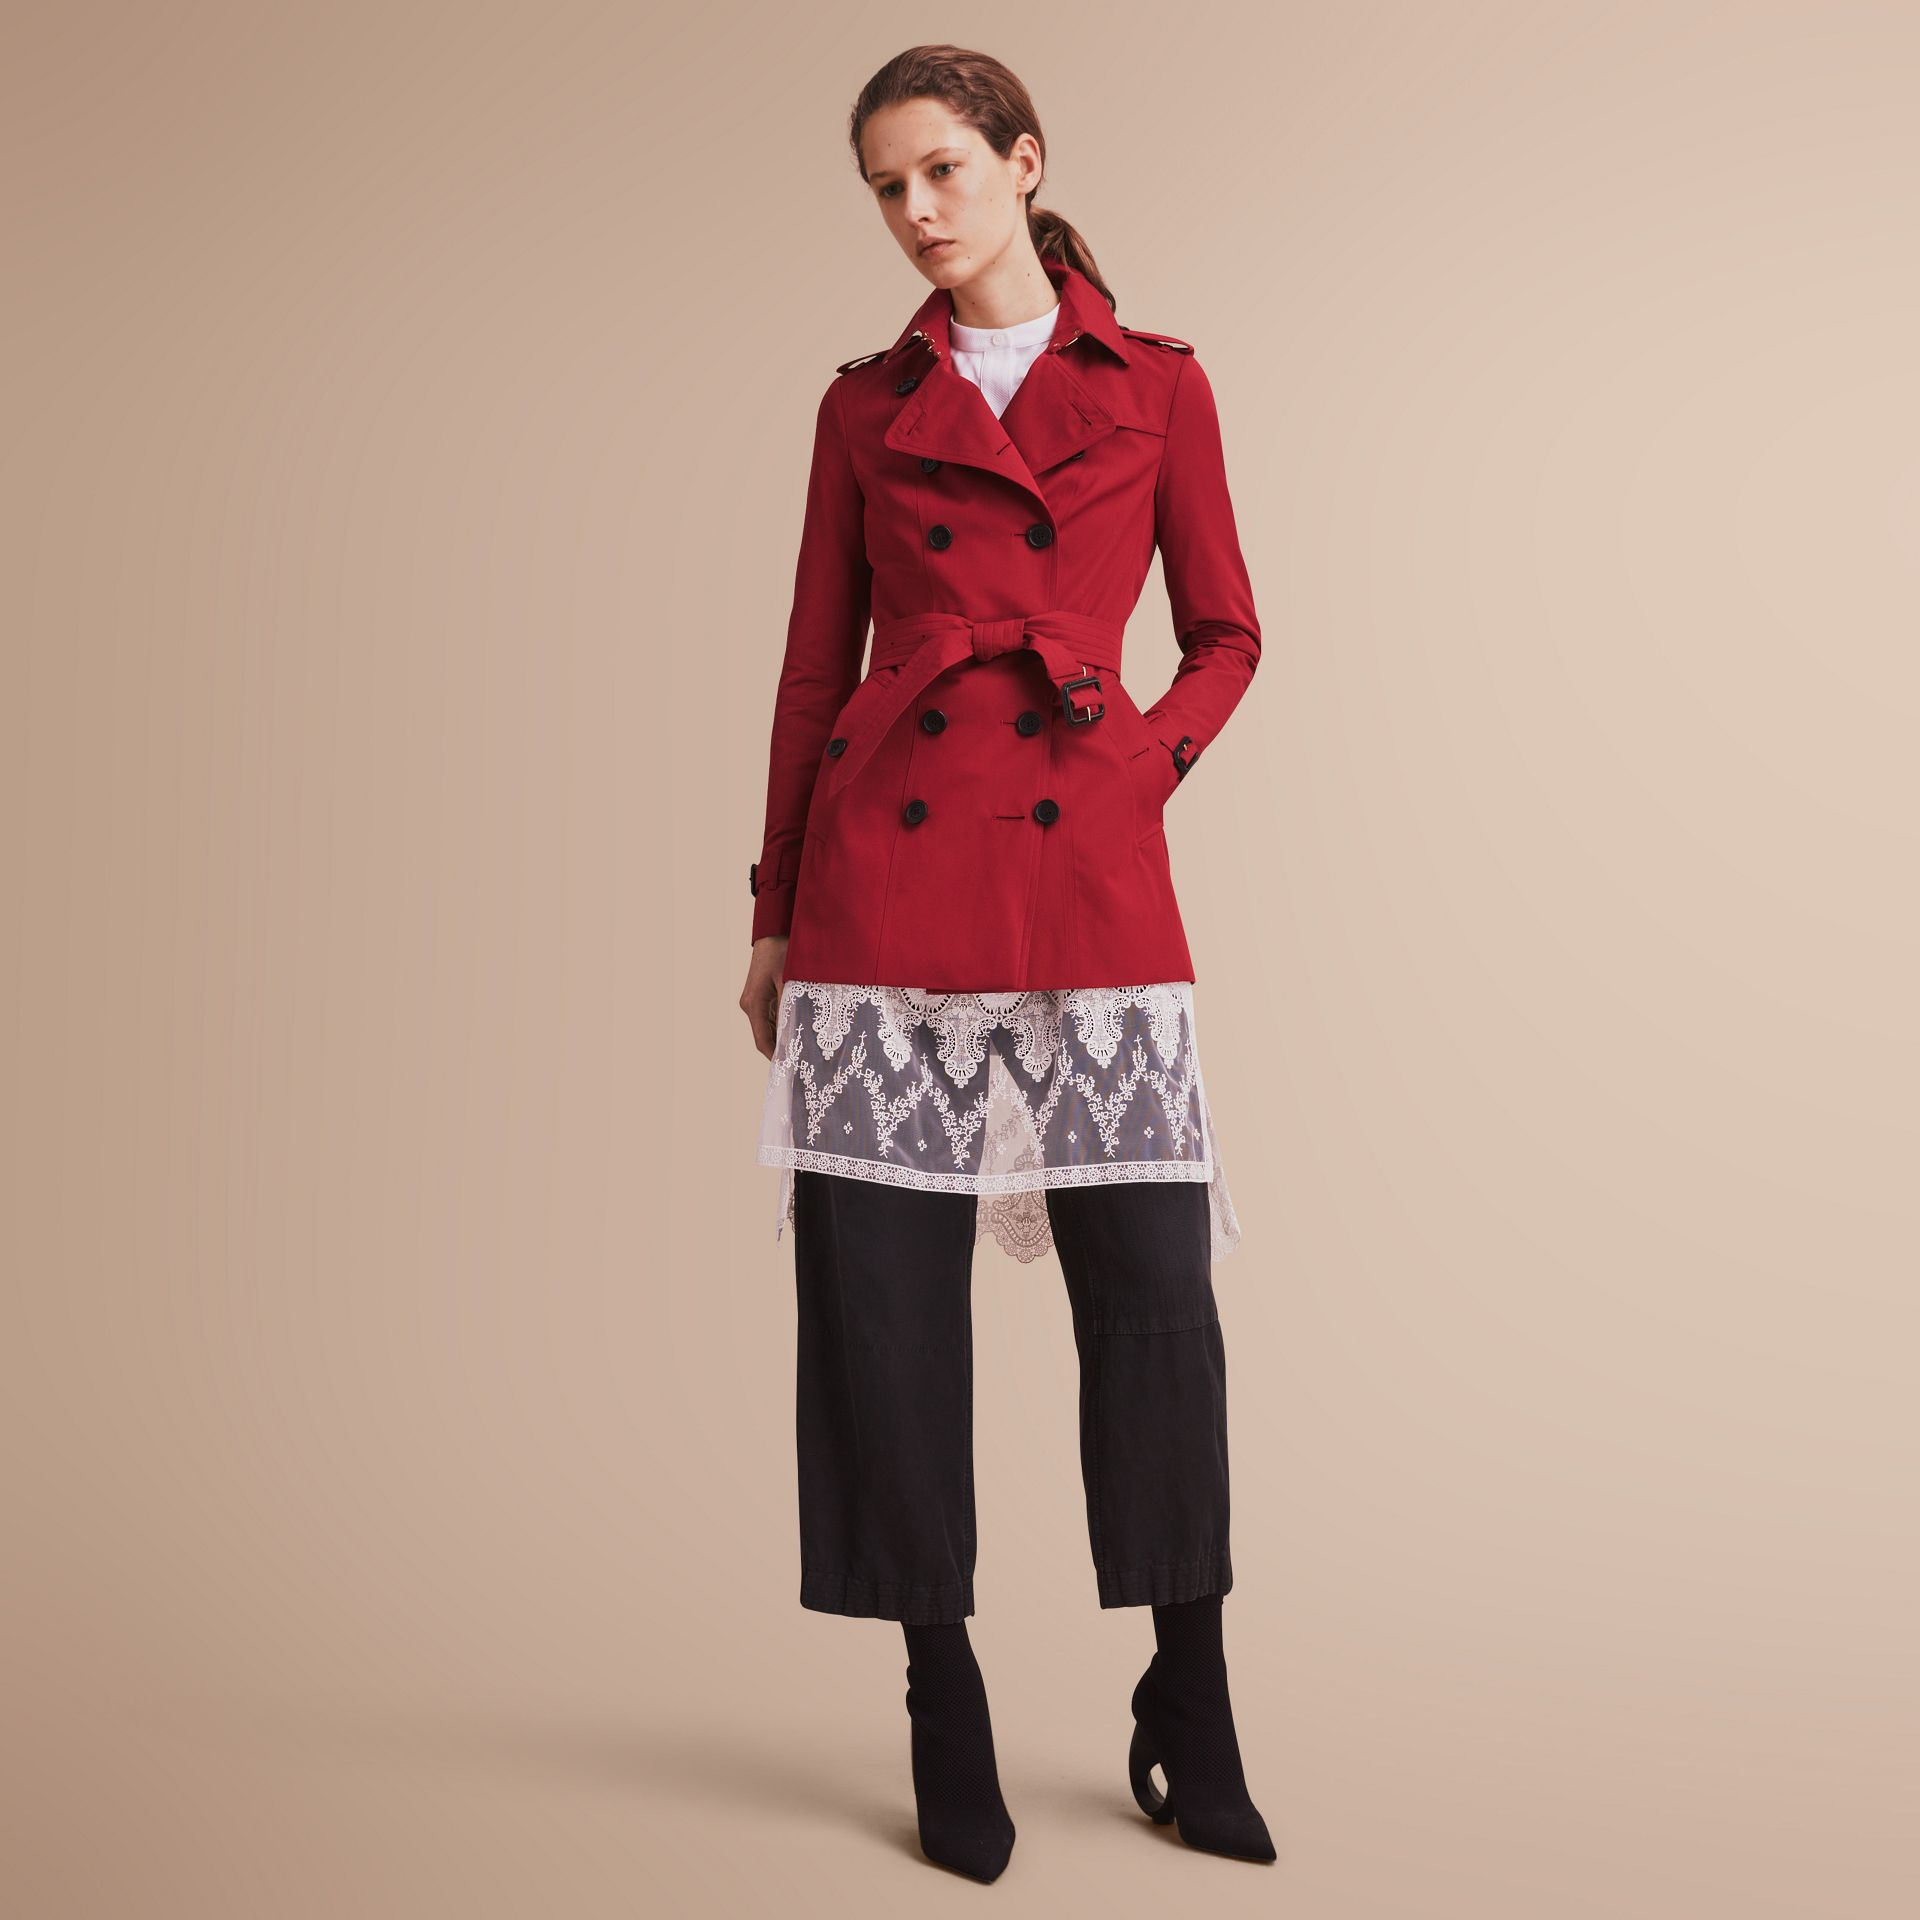 The Sandringham – Short Heritage Trench Coat in Parade Red - Women | Burberry - gallery image 1